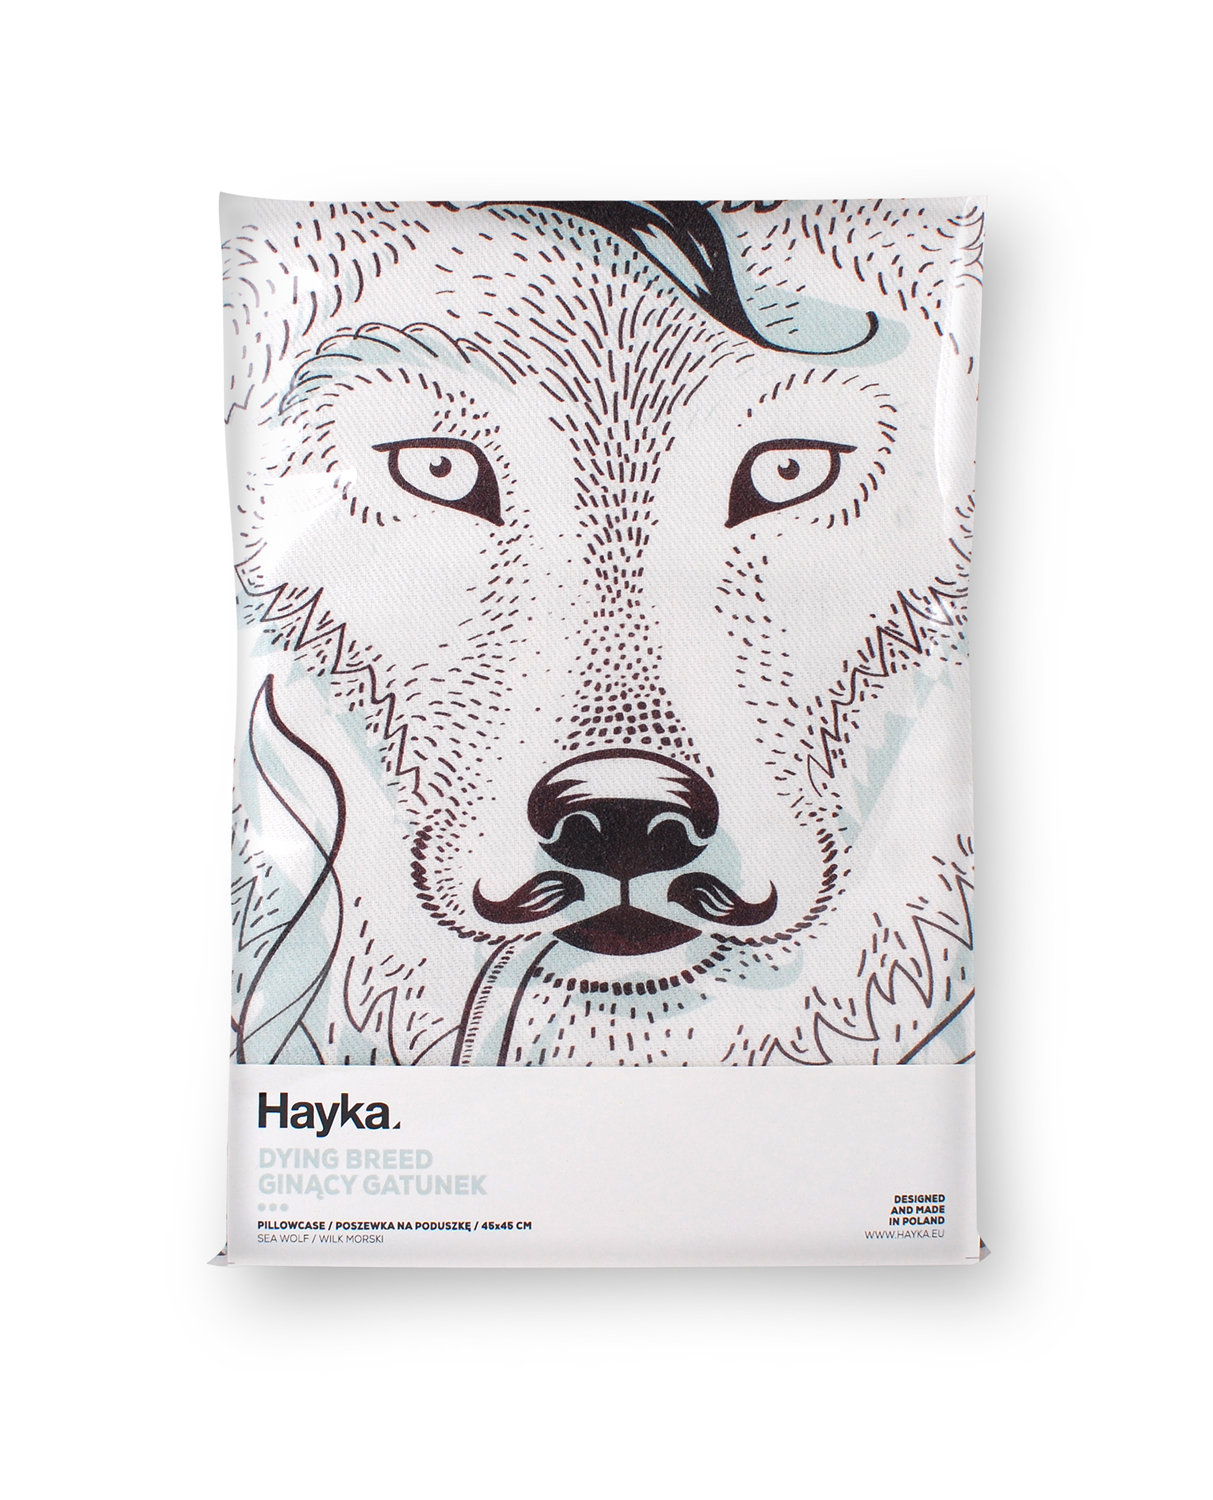 db-wolf-pillowcase-package